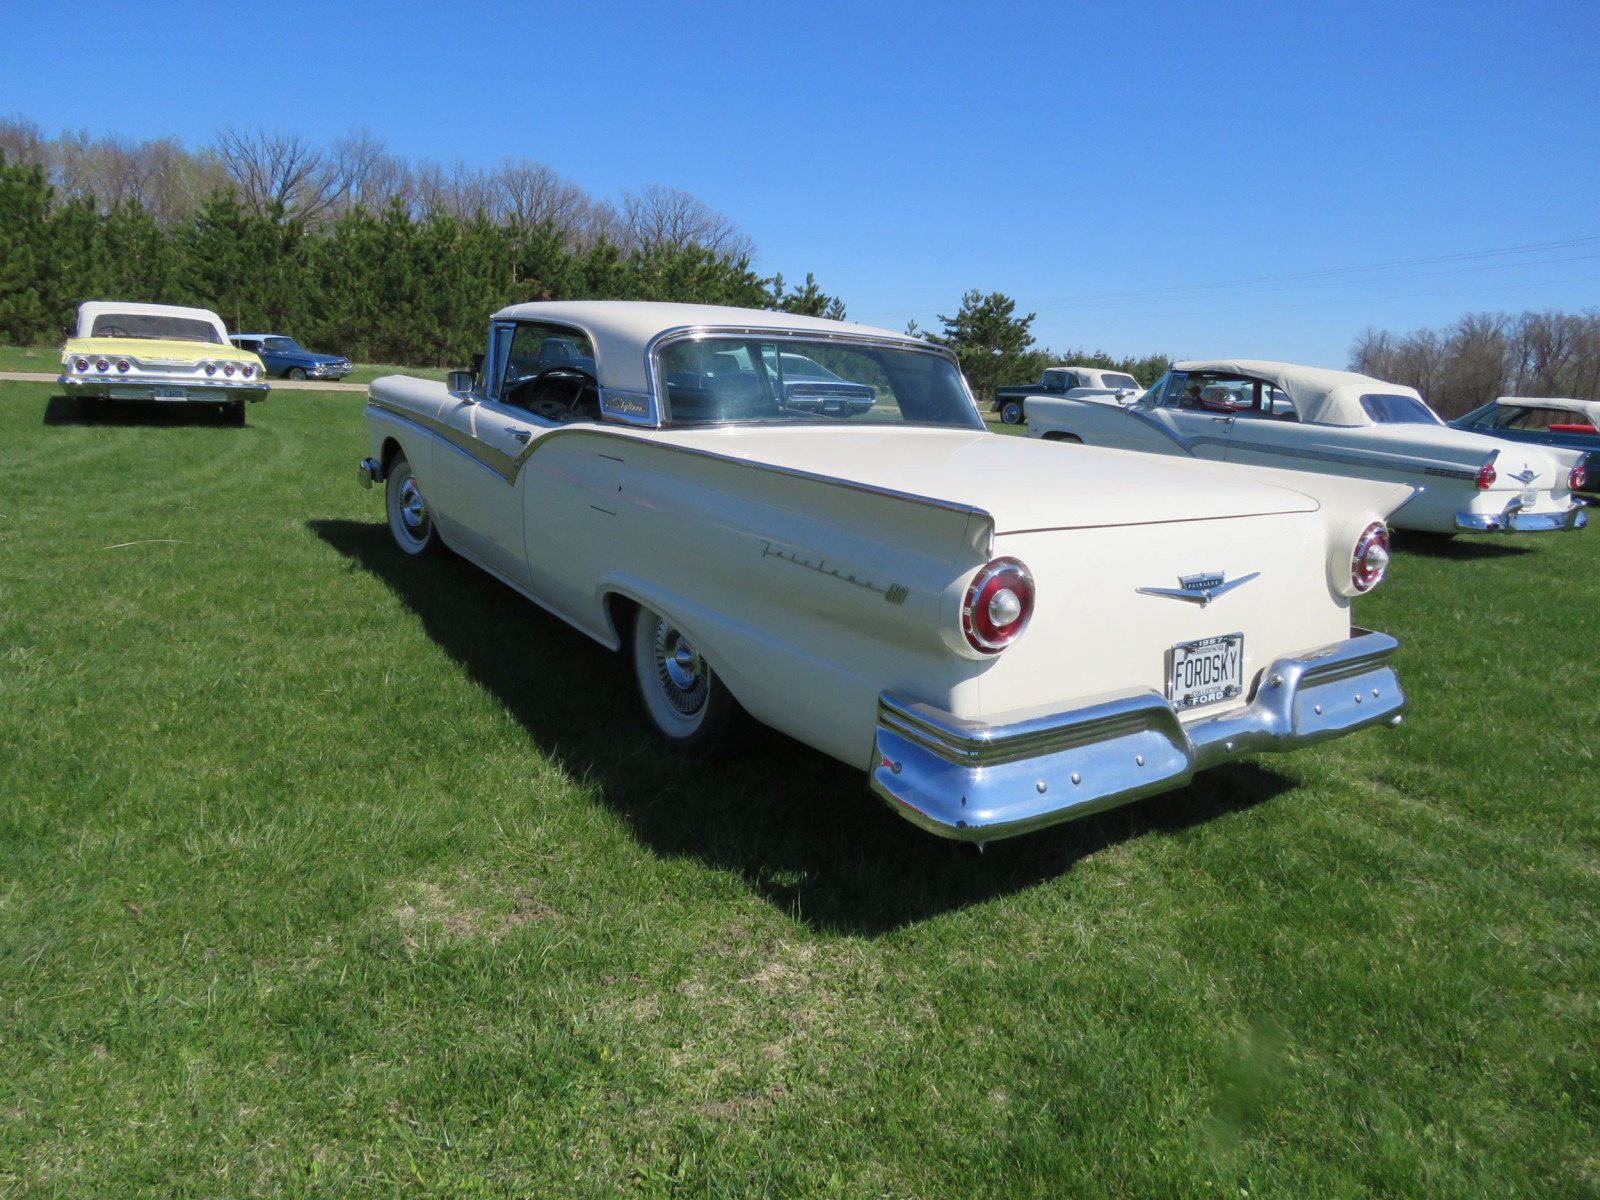 1957 Ford Fairlane 500 Skyliner Retractable Hardtop - Image 8